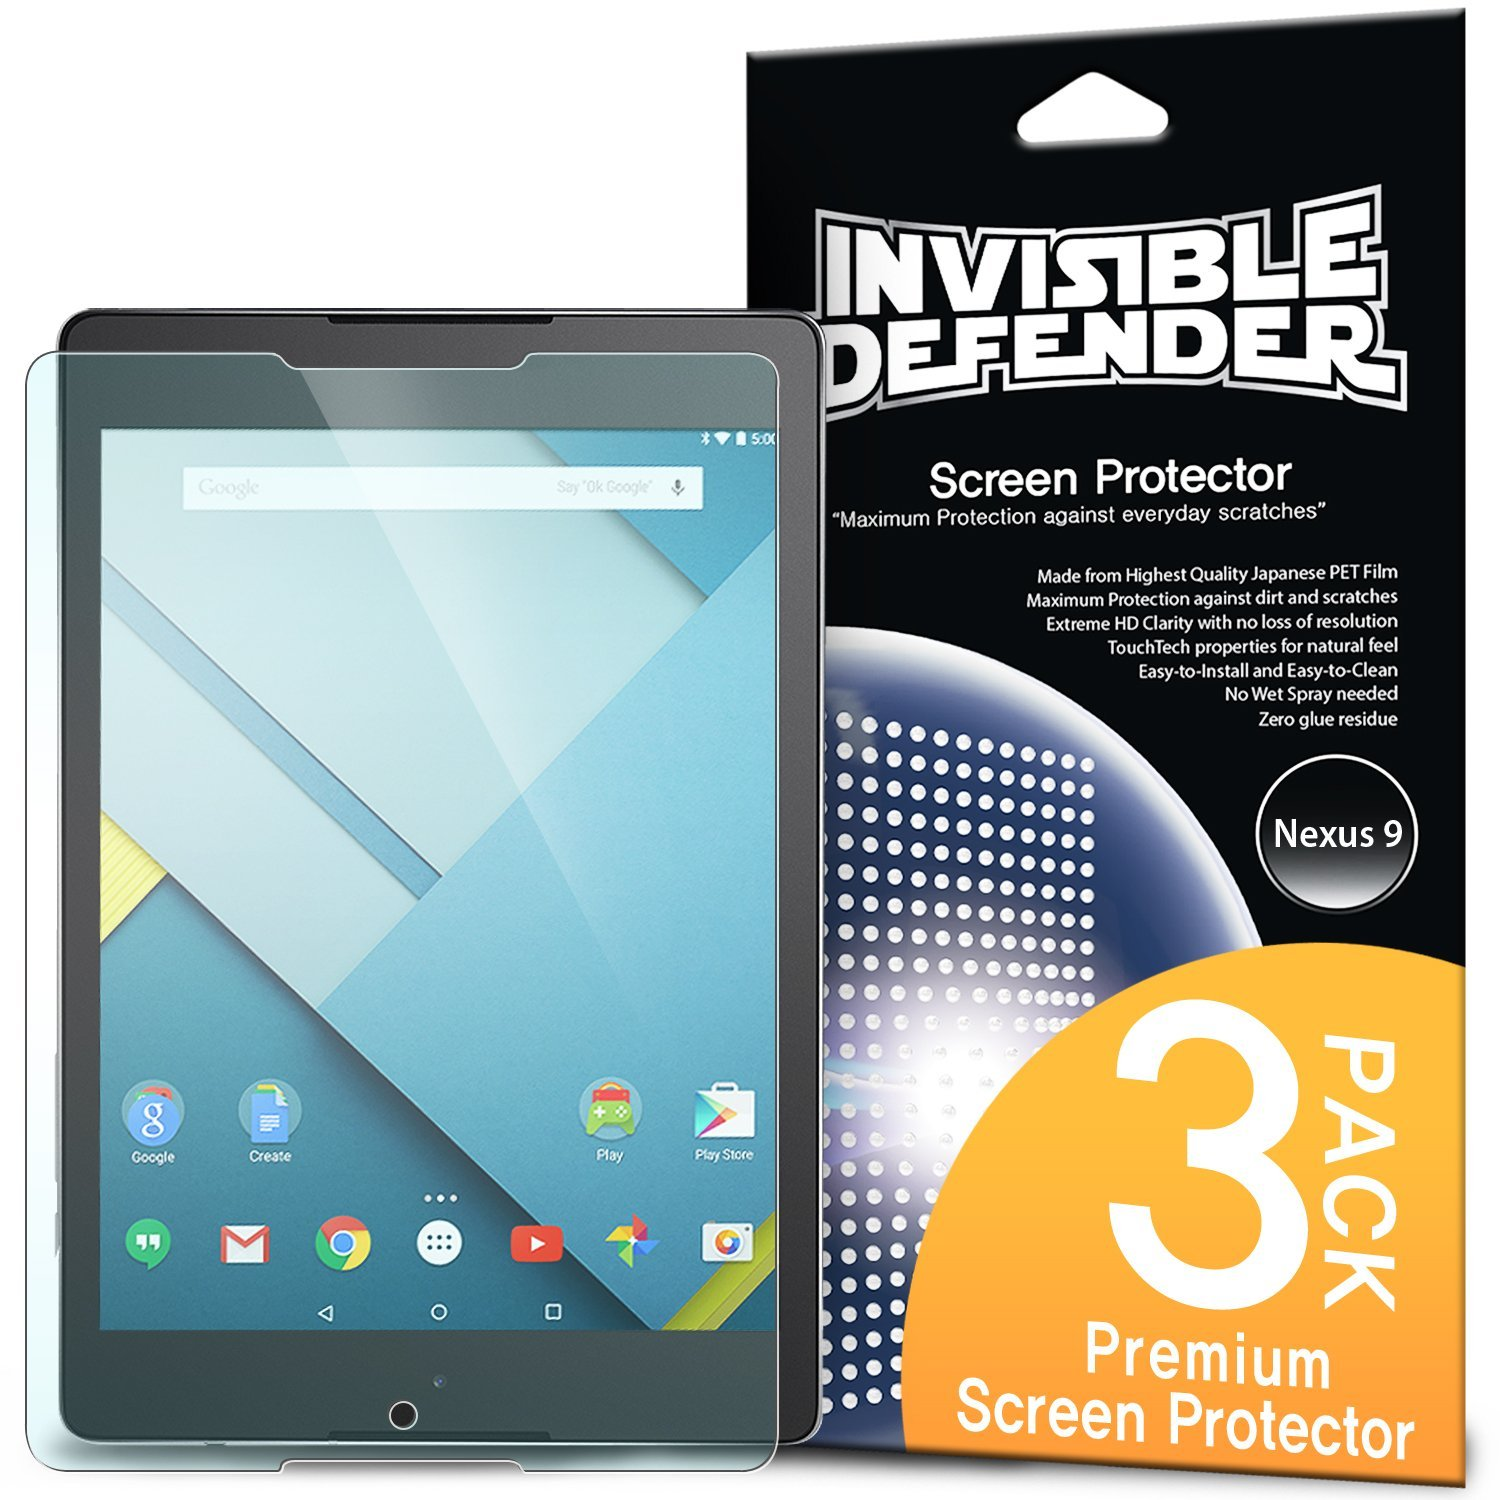 Nexus 9 Screen Protector - Invisible Defender (Pack 1)